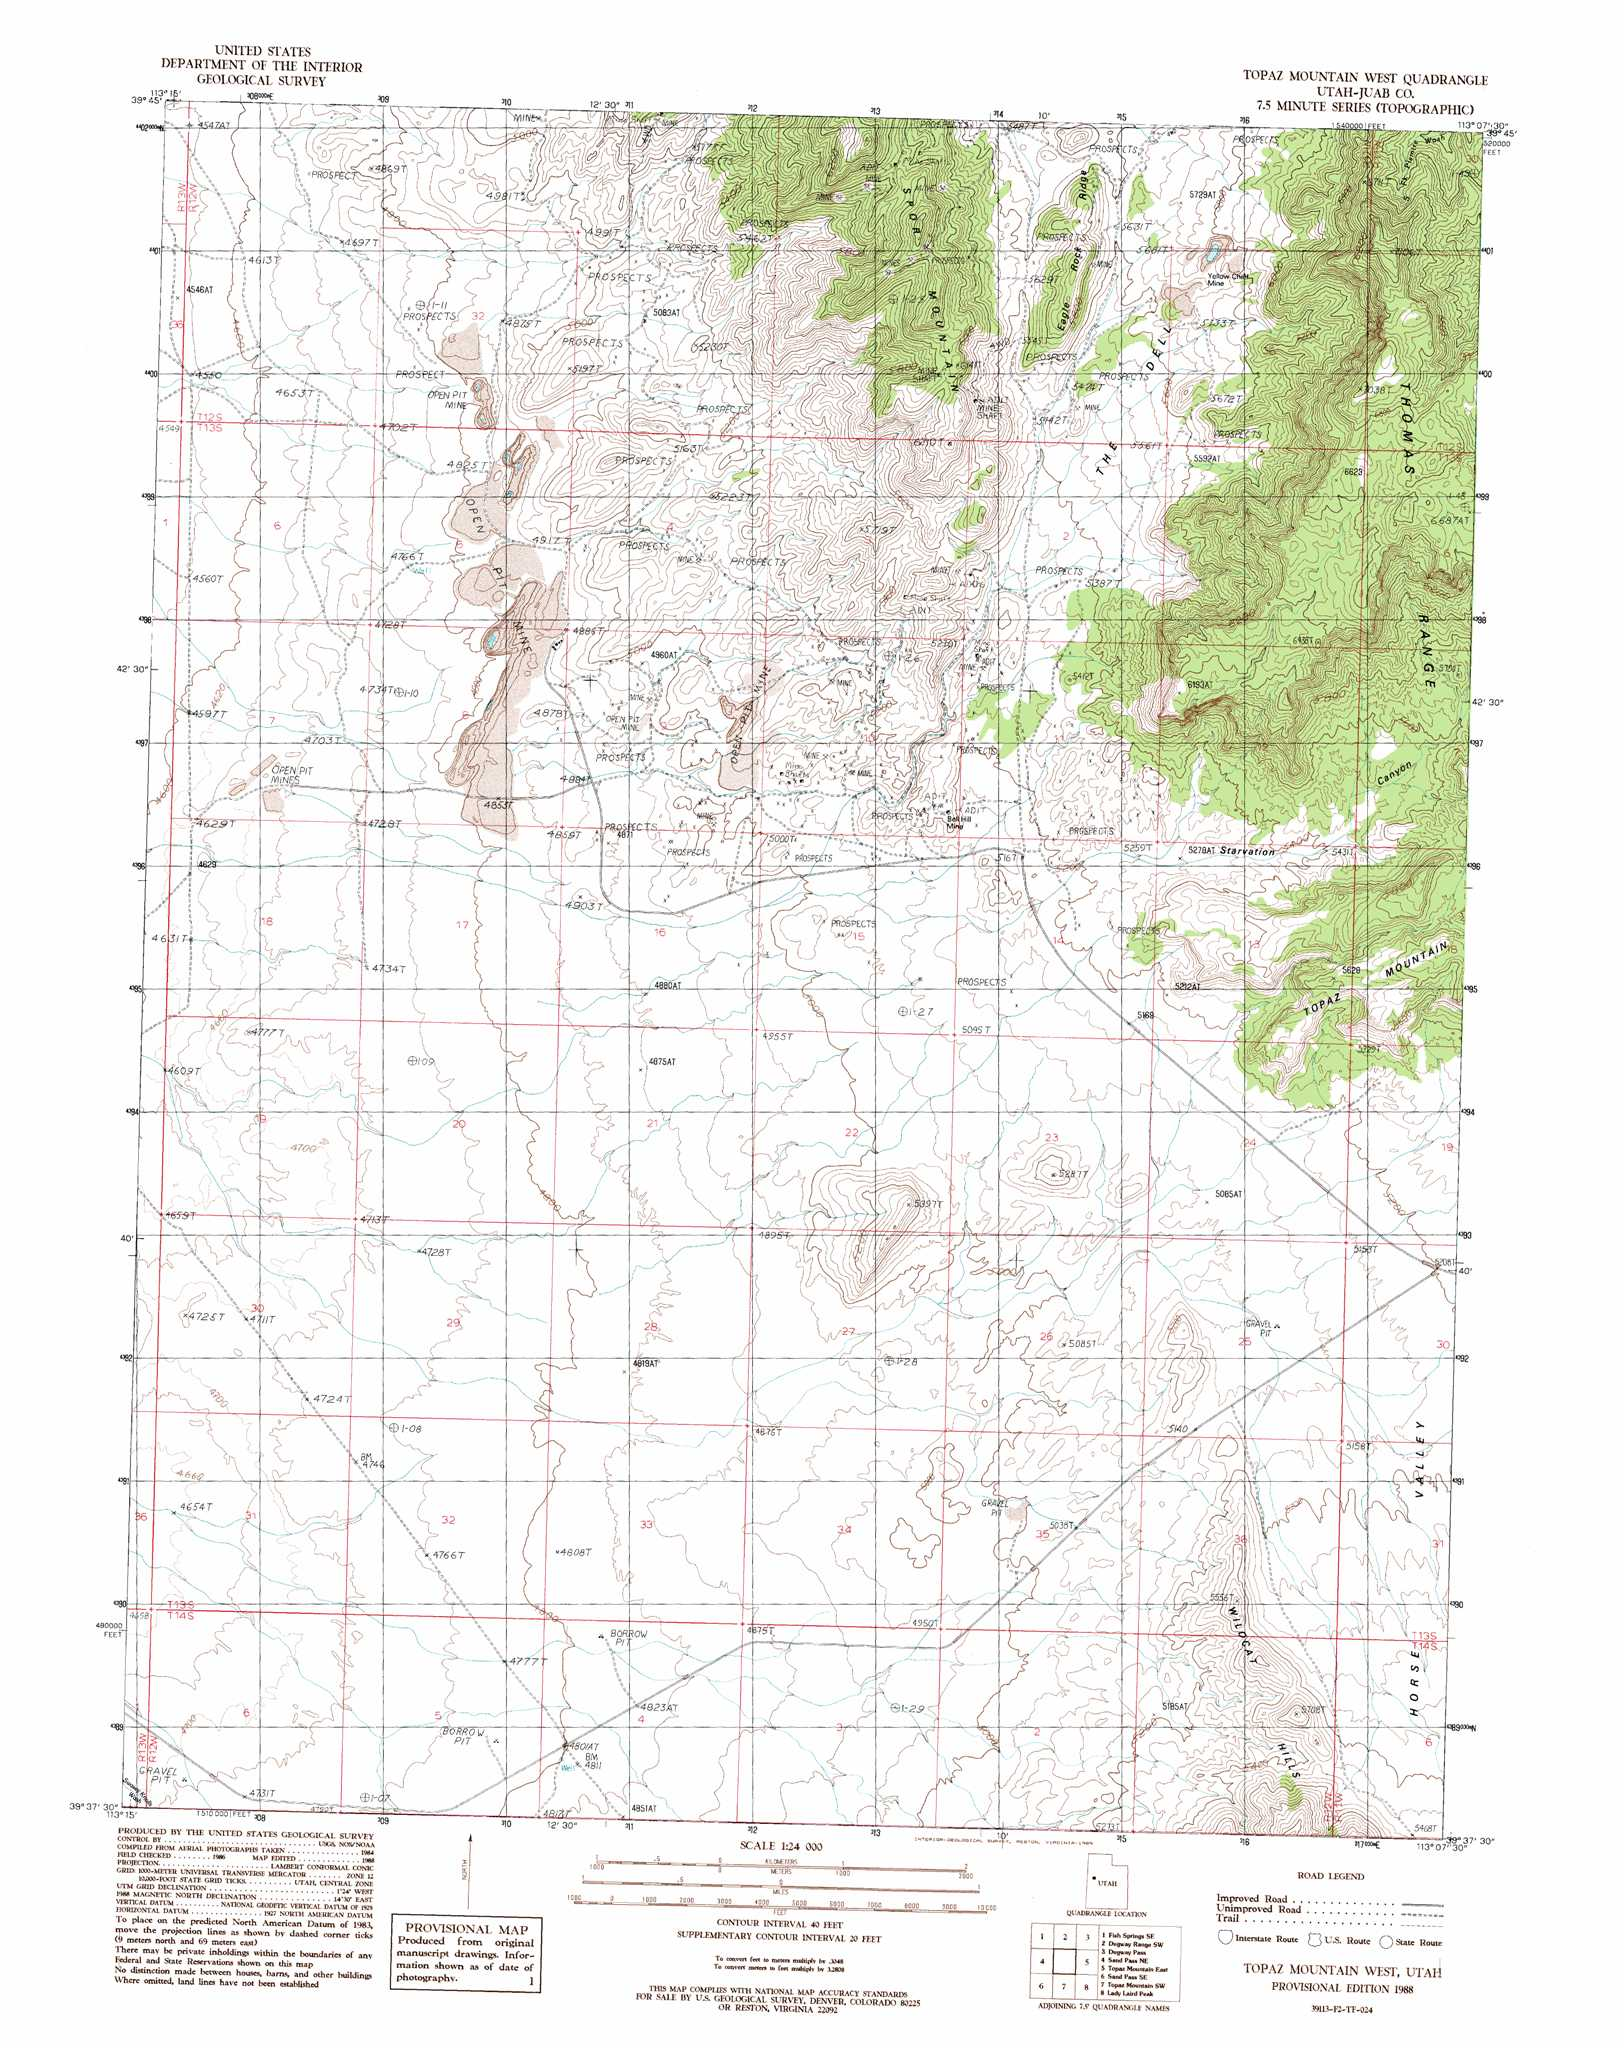 Topaz Mountain Utah Map.Topaz Mountain West Topographic Map Ut Usgs Topo Quad 39113f2